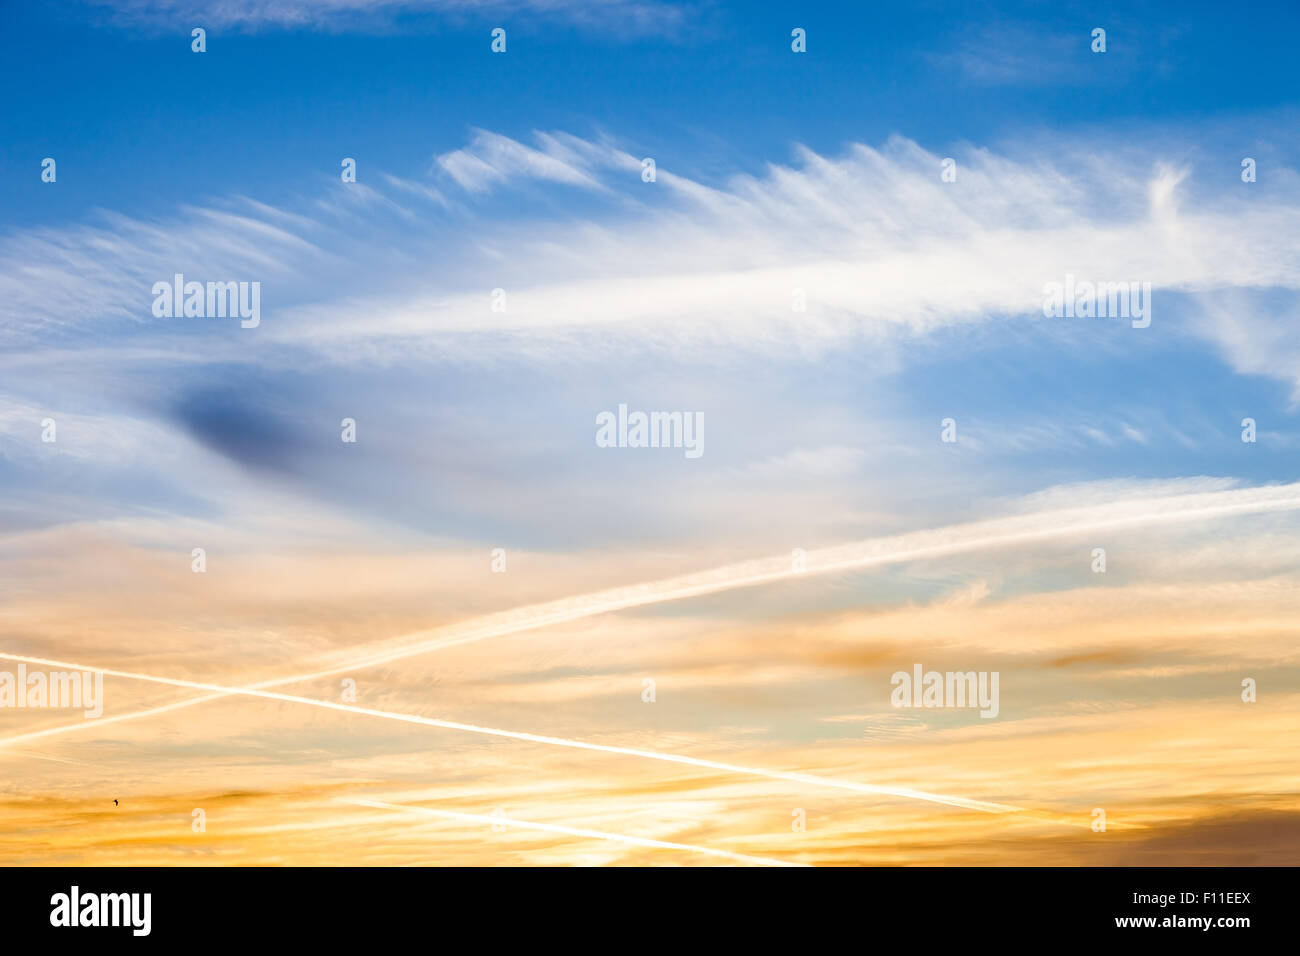 Geo engineering through airplane chemtrails sprayed in the sky, making it cloudy and polluting the environment. Stock Photo